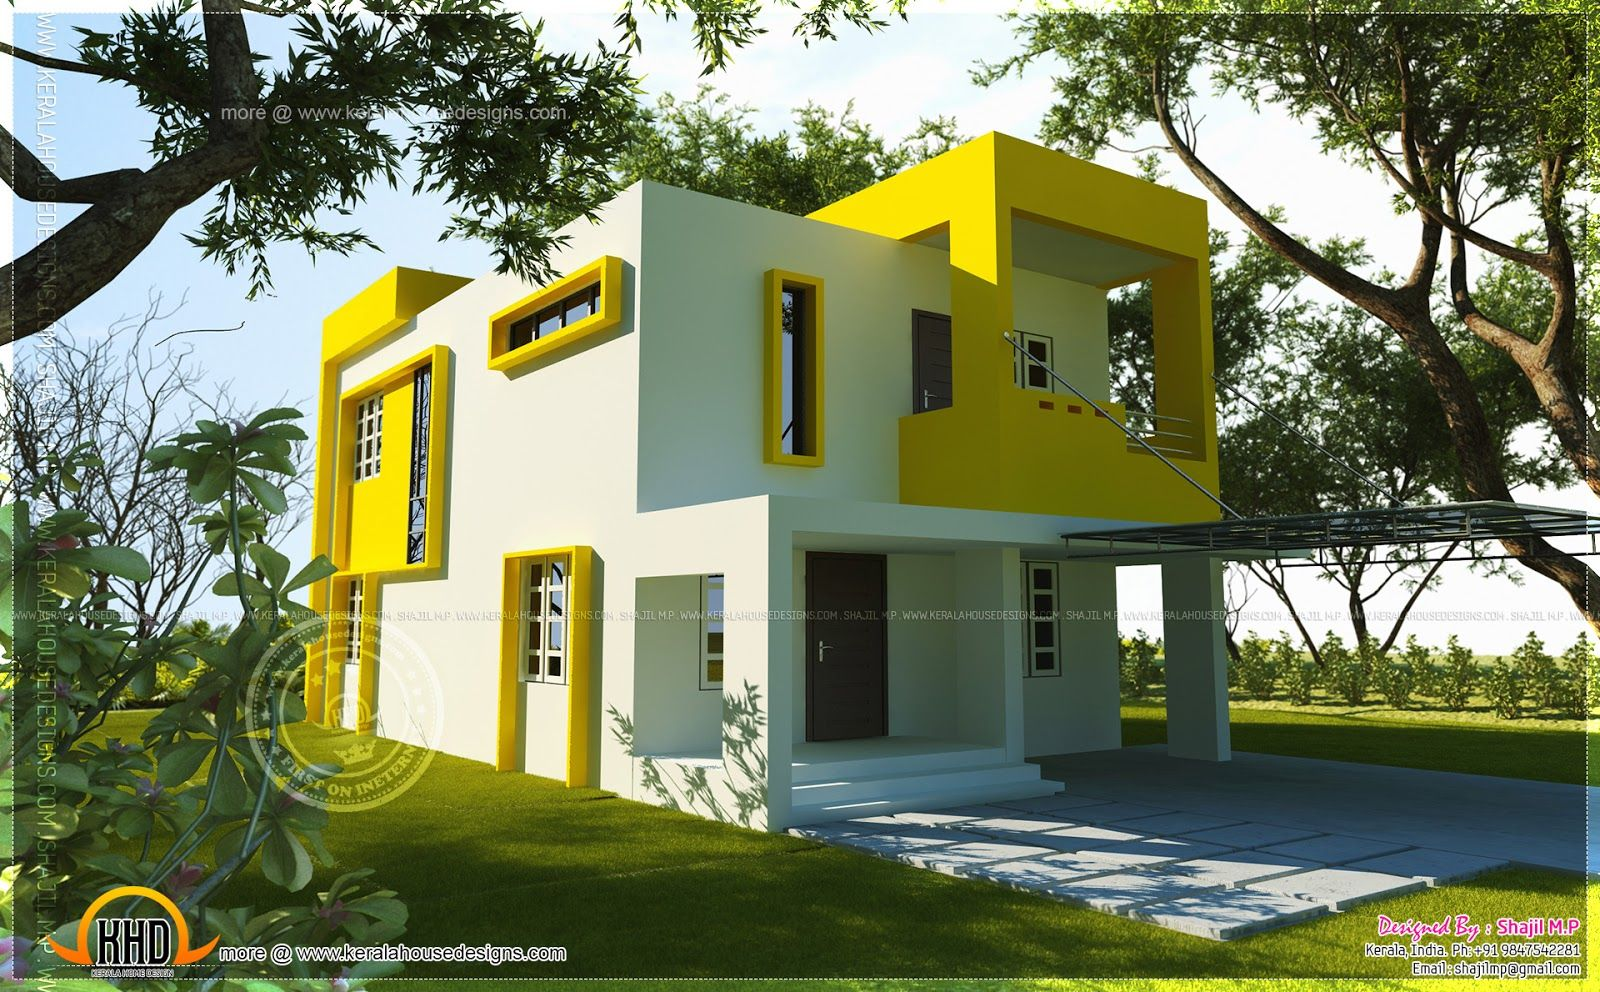 Small contemporary house square feet indian house plans square feet contemporary home exterior Small modern home design ideas